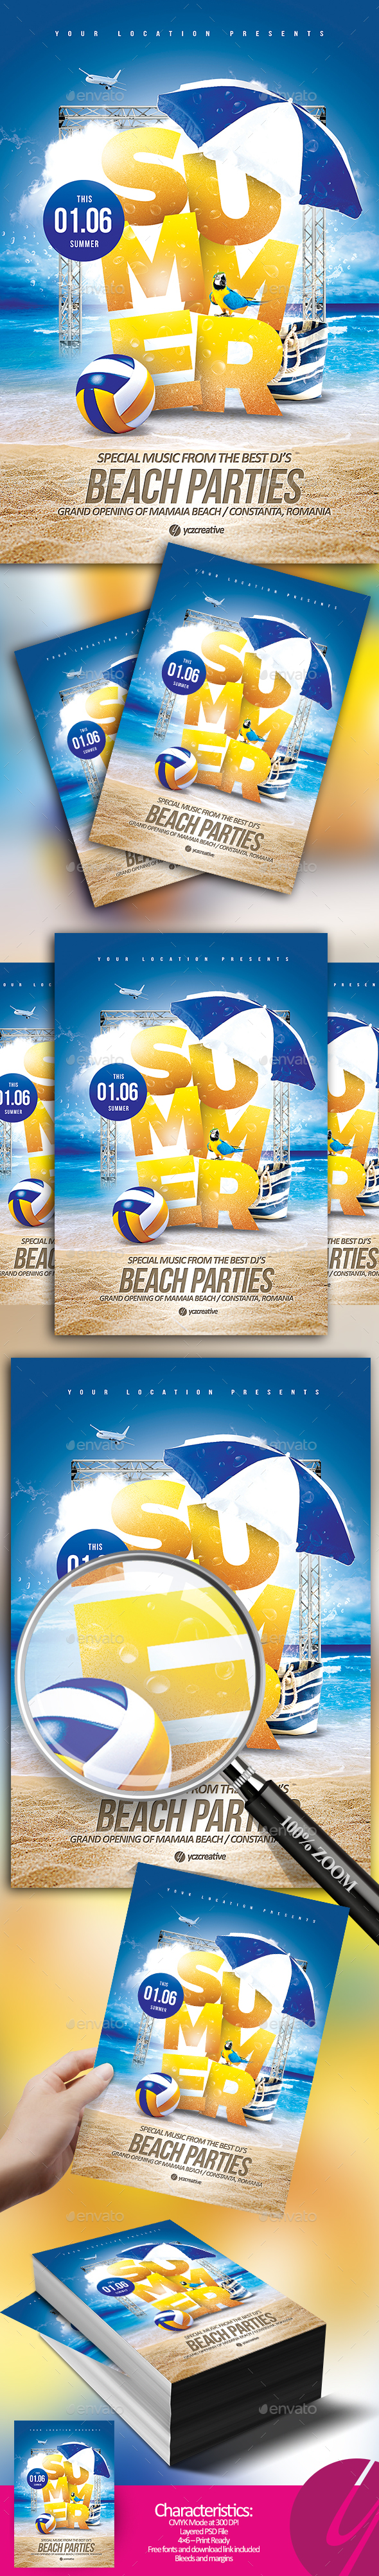 Summer Beach Parties Flyer - Clubs & Parties Events